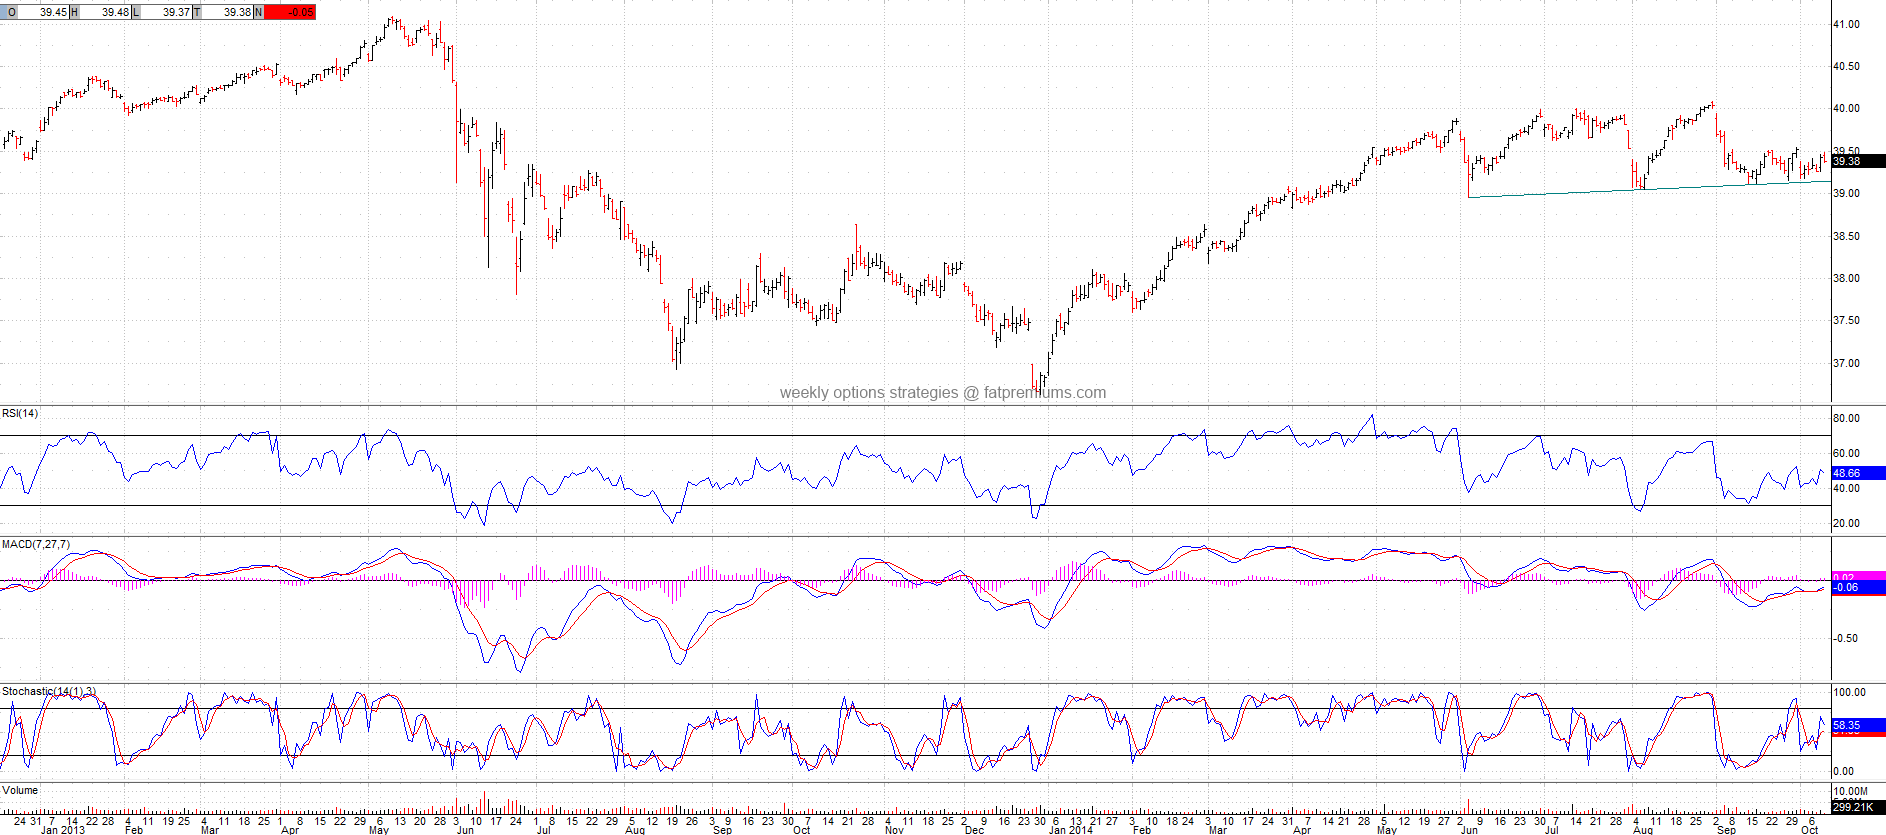 S&P US Preferred Stock Index iShares (NYSEARCA:PFF) Daily Chart (2014-10-09) Neutral